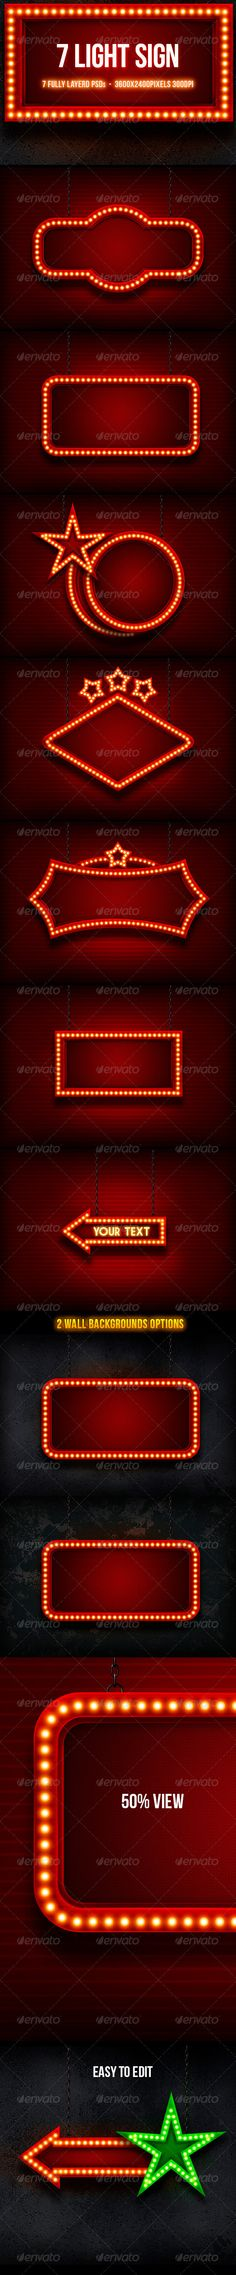 Light Sign - Backgro...